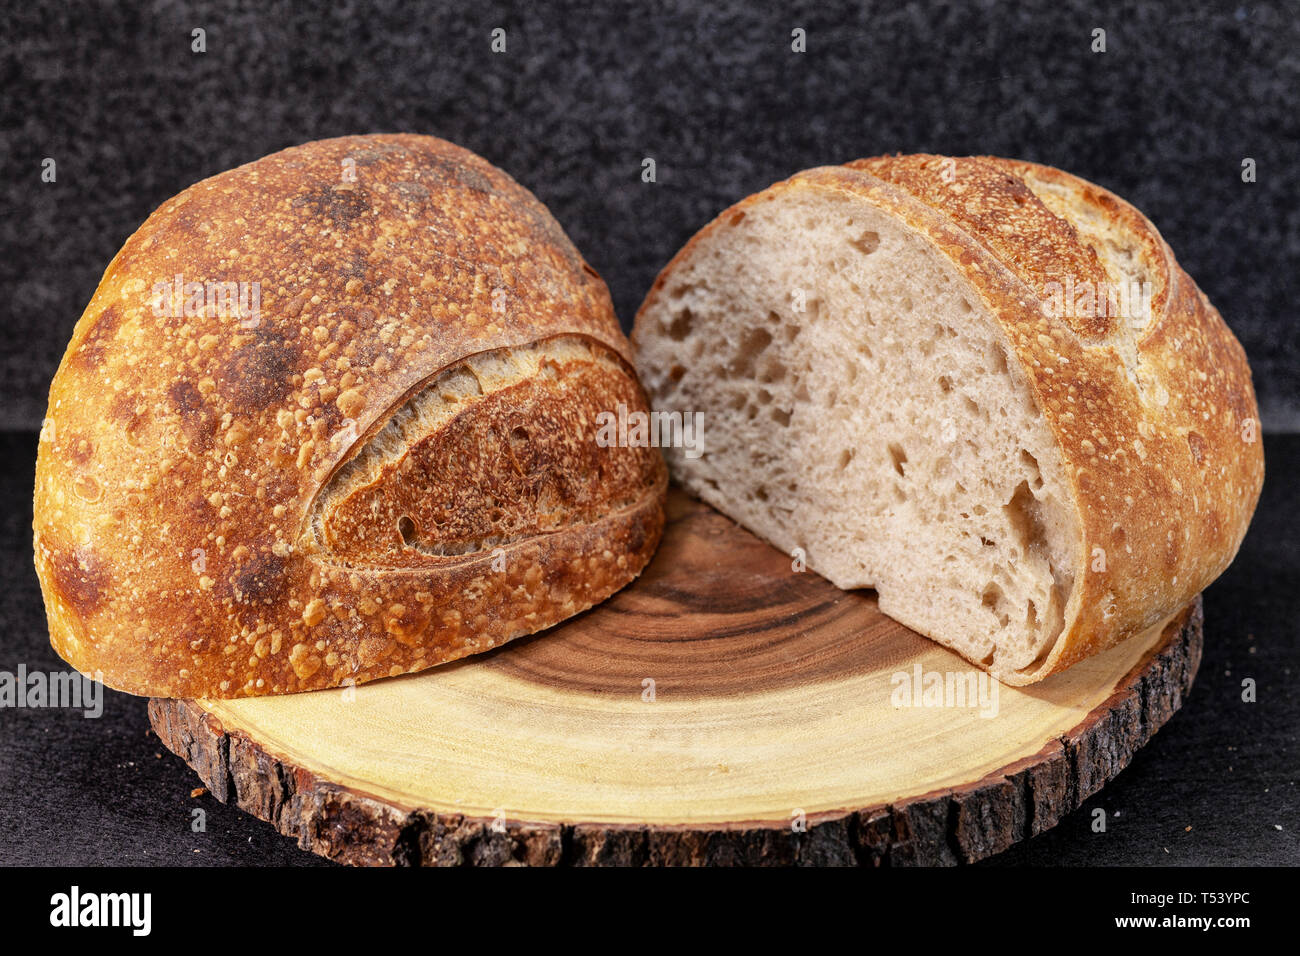 Artisan loaf of traditional Homemade sourdough focaccia Boule bread with crust on a wooden board - Image Stock Photo